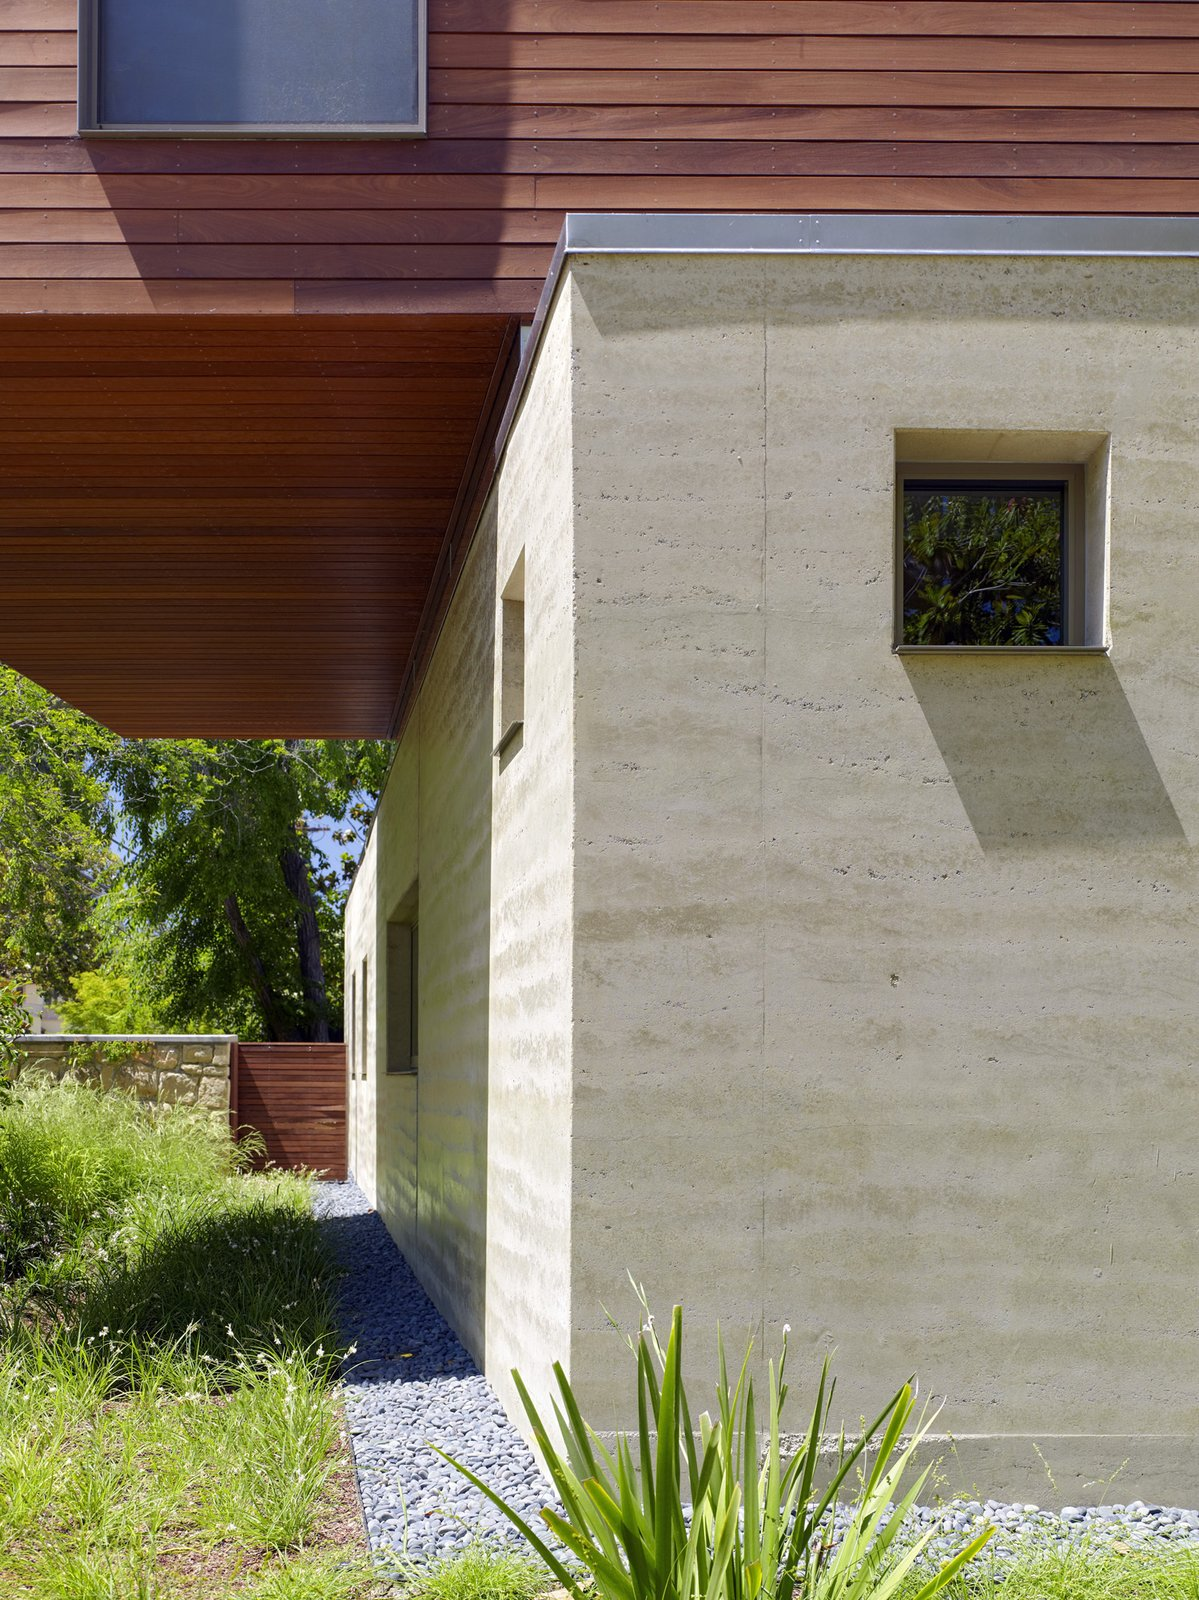 """Exterior, Wood Siding Material, Flat RoofLine, and House Building Type """"We originally proposed using concrete for the walls because we like the plain style and directness,"""" the owners say. Instead of concrete, Smith suggested rammed earth, a material that combines some of the physical properties of concrete, but is less """"psychologically cold."""" The 16-inch-thick walls' thermal mass helps to insulate the interior from heat in the summer and cold in the winter.  """"Rammed earth is complicated,"""" says Smith, """"so have the right expectations, do the research, and hire the right people."""" David Easton—who Smith calls """"The Godfather of Rammed Earth""""—headed the contracting team that built the walls.  Great Earth Homes by Kelsey Keith"""